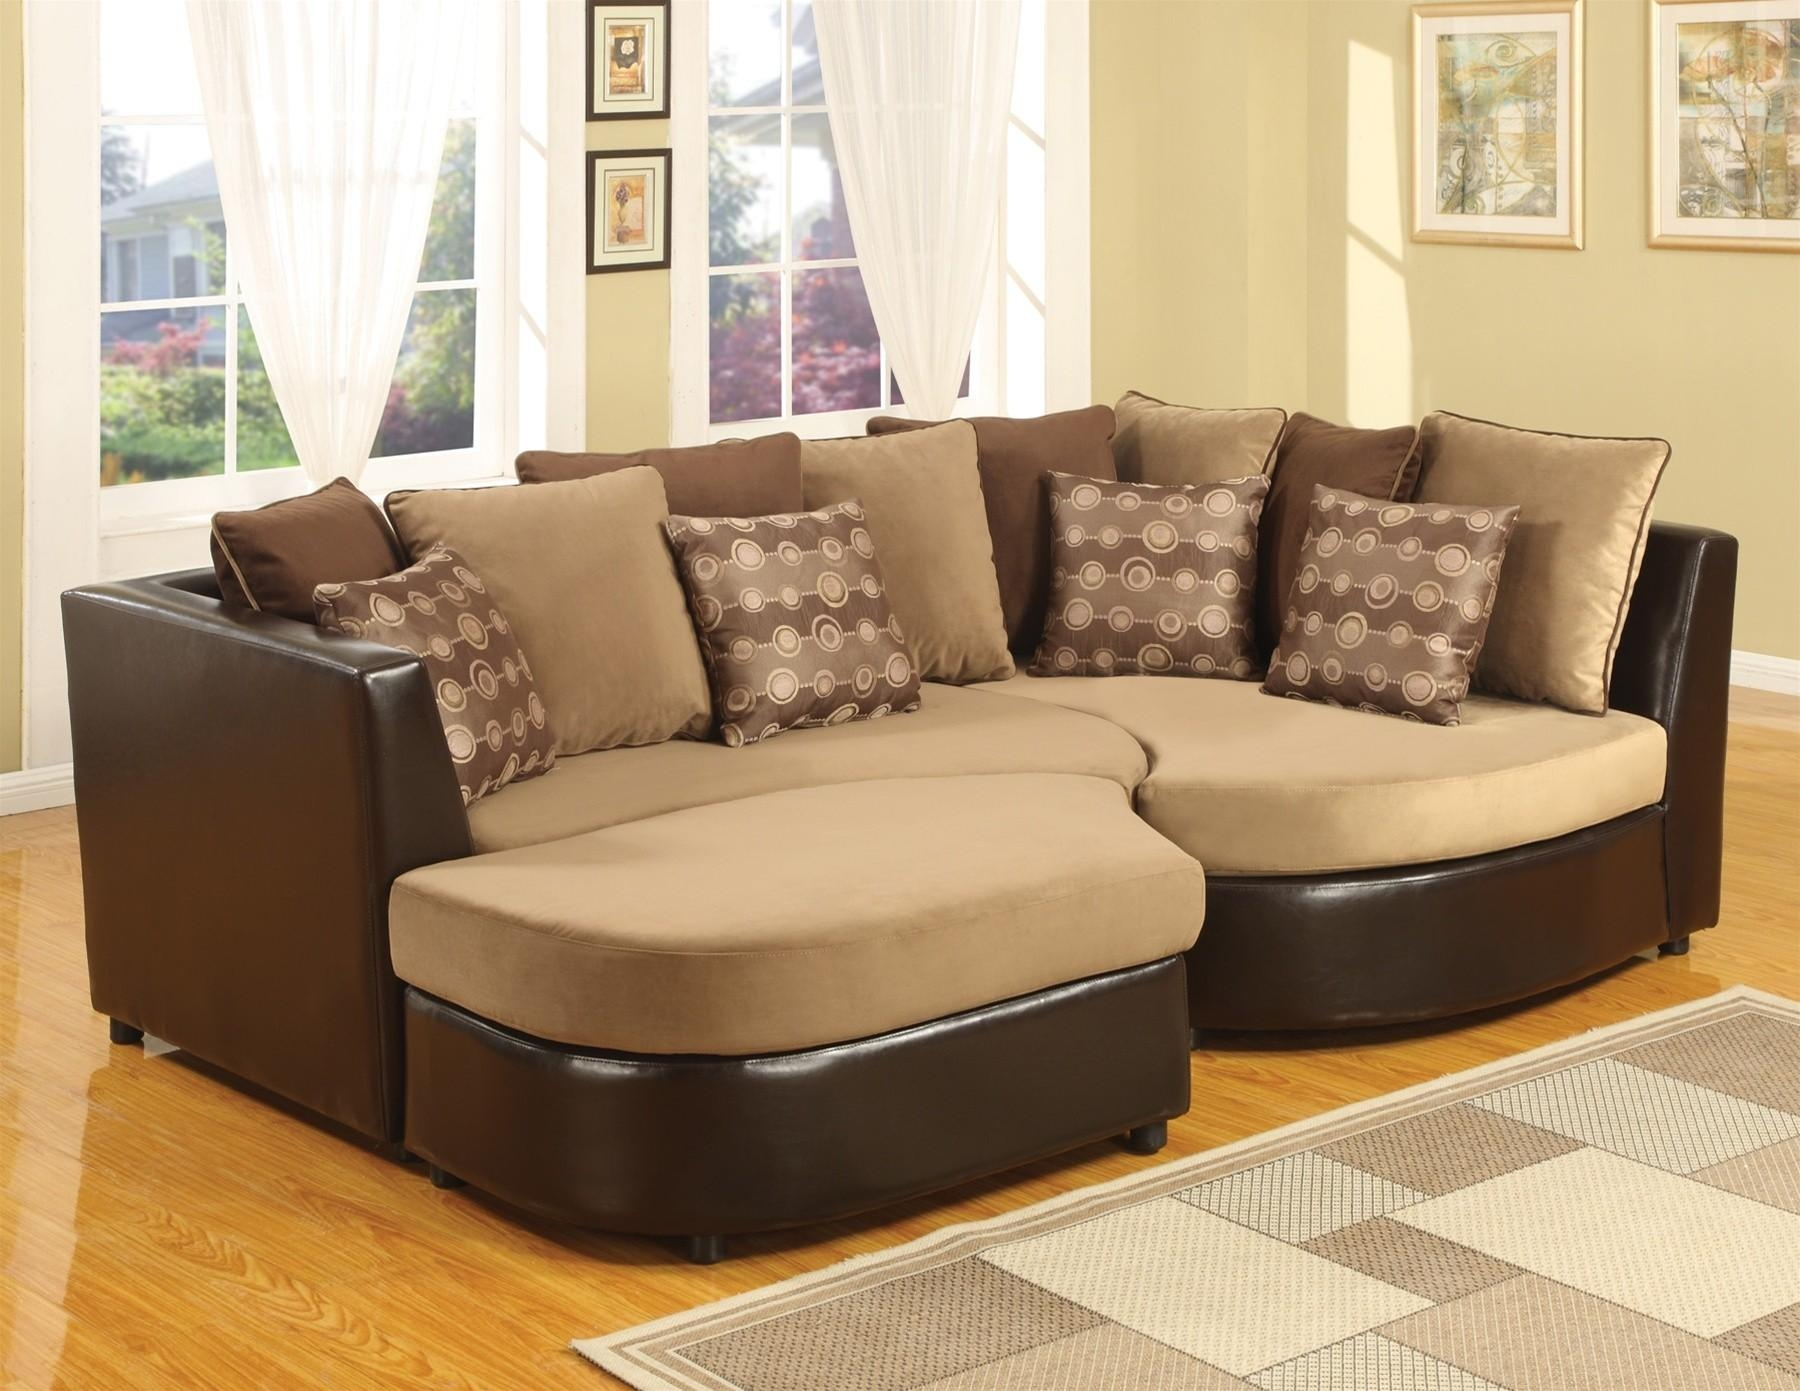 Sectional Pit Group Sofa | Couch & Sofa Ideas Interior Design Pertaining To Pit Sofas (Image 14 of 20)